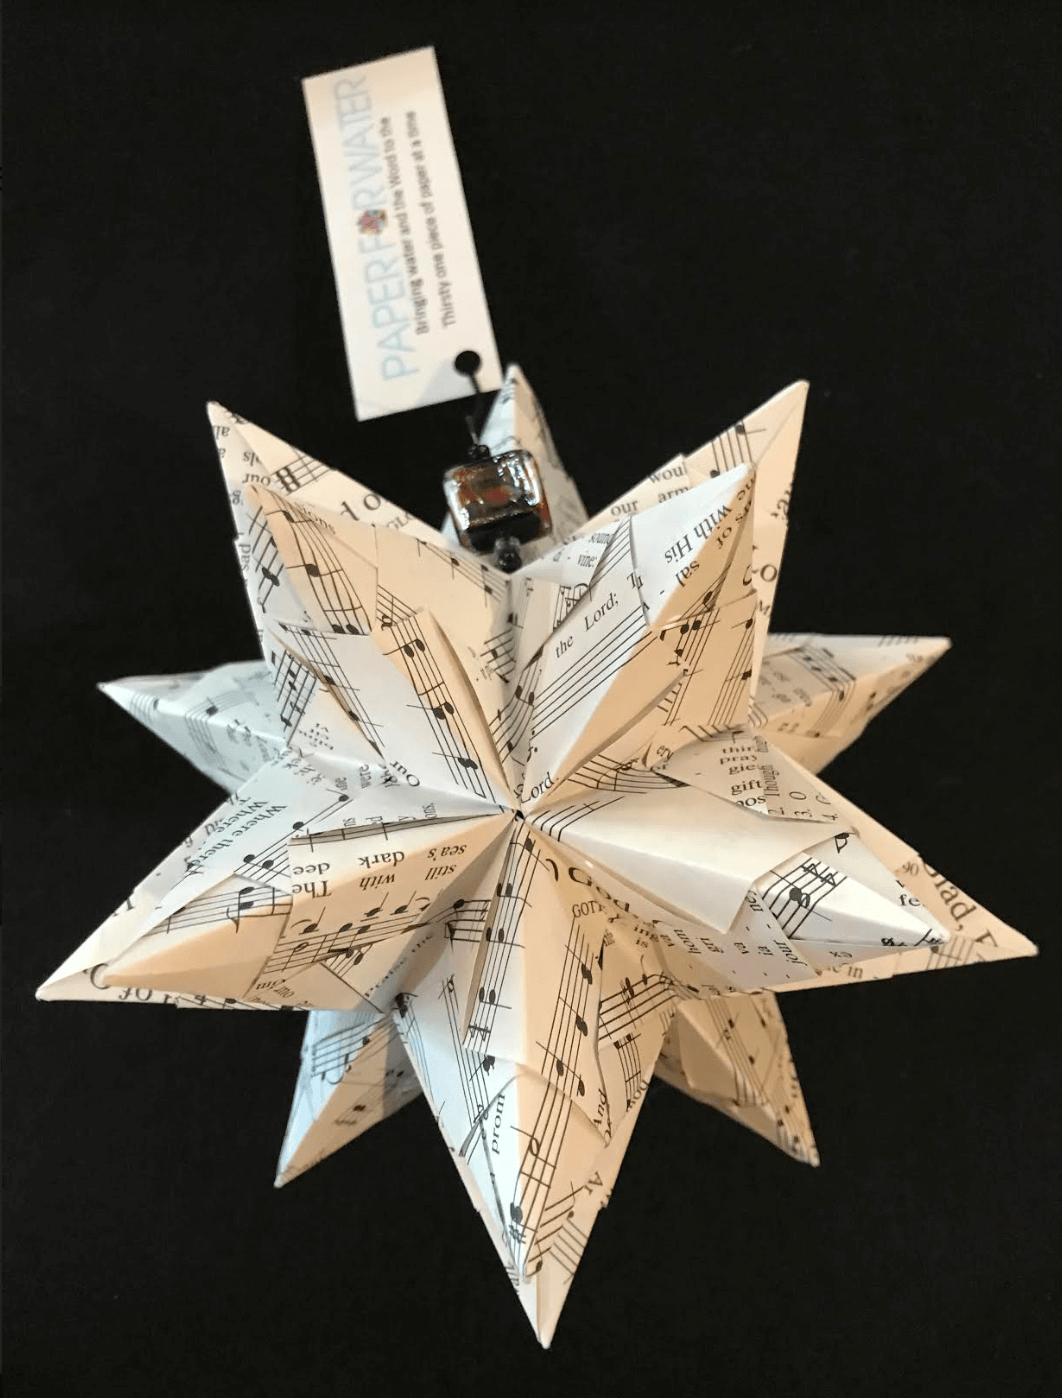 Hymn and carols bascetta star